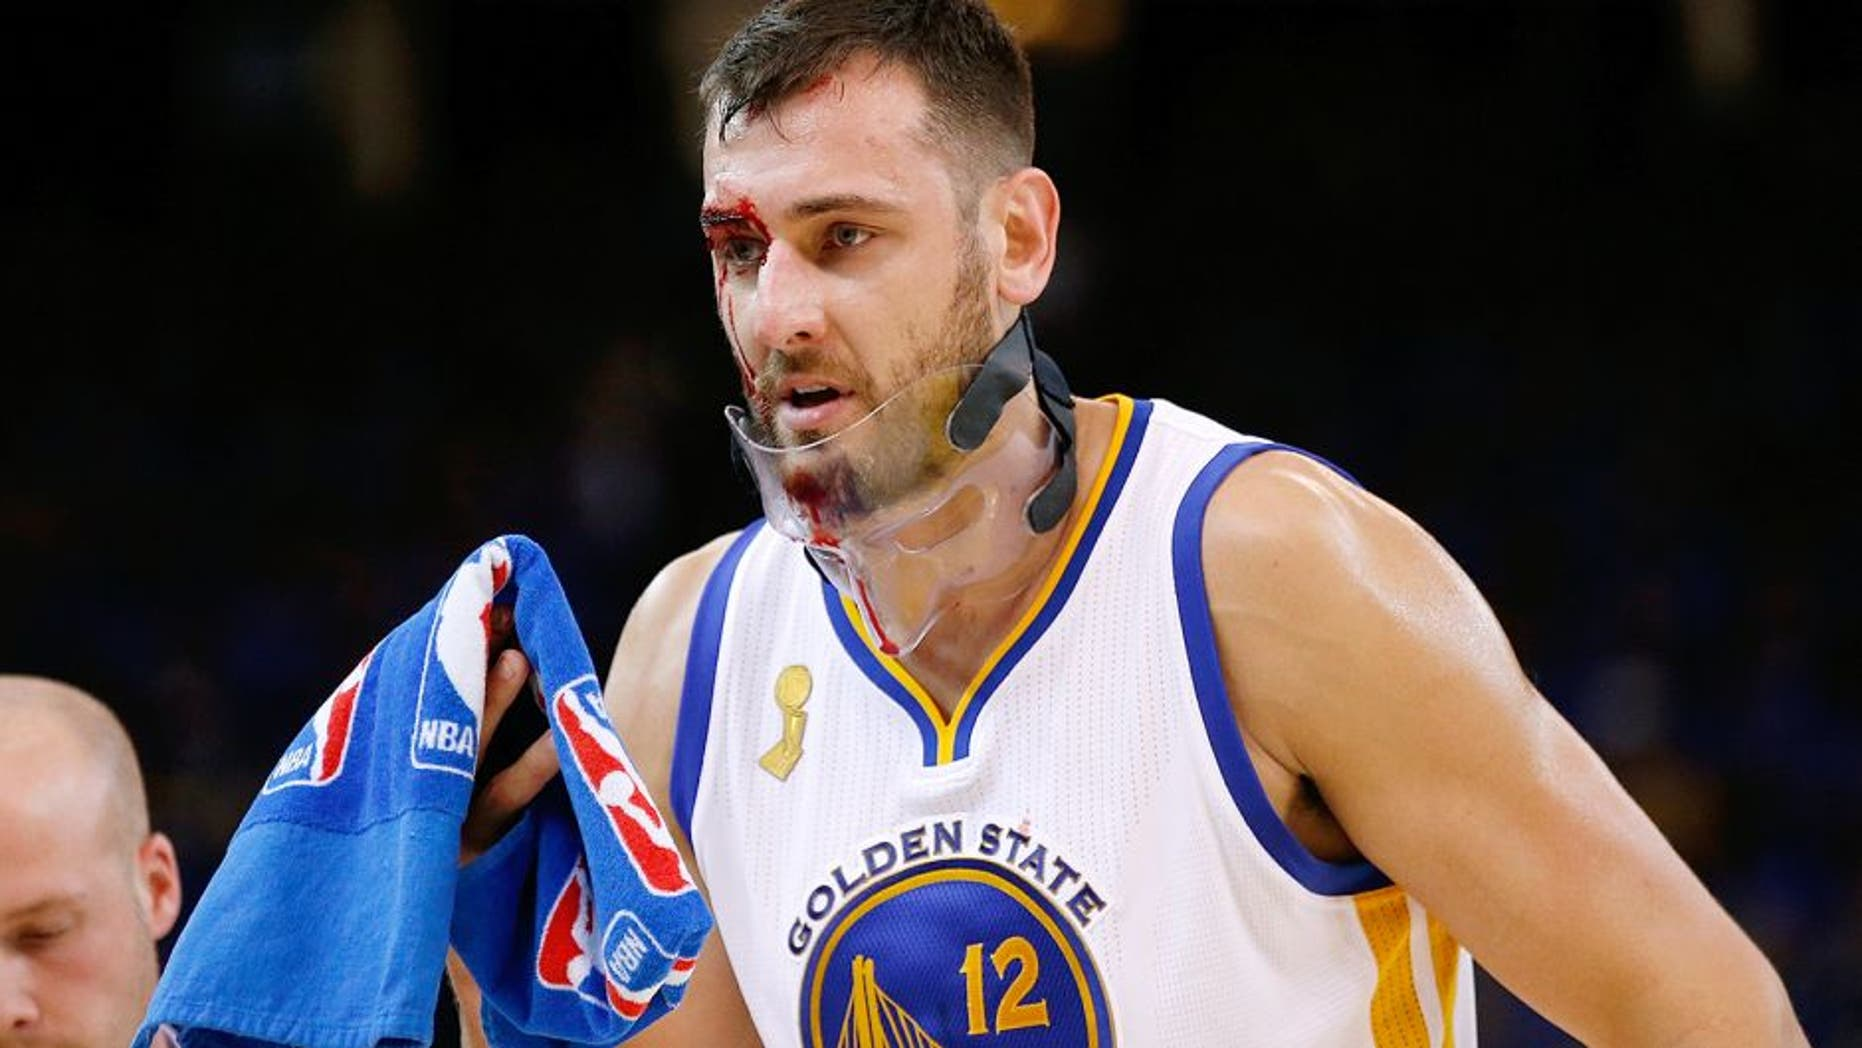 OAKLAND, CA - OCTOBER 27: Andrew Bogut #12 of the Golden State Warriors walks off the court after being cut during the NBA season opener against the New Orleans Pelicans at ORACLE Arena on October 27, 2015 in Oakland, California. NOTE TO USER: User expressly acknowledges and agrees that, by downloading and or using this photograph, User is consenting to the terms and conditions of the Getty Images License Agreement. (Photo by Ezra Shaw/Getty Images)